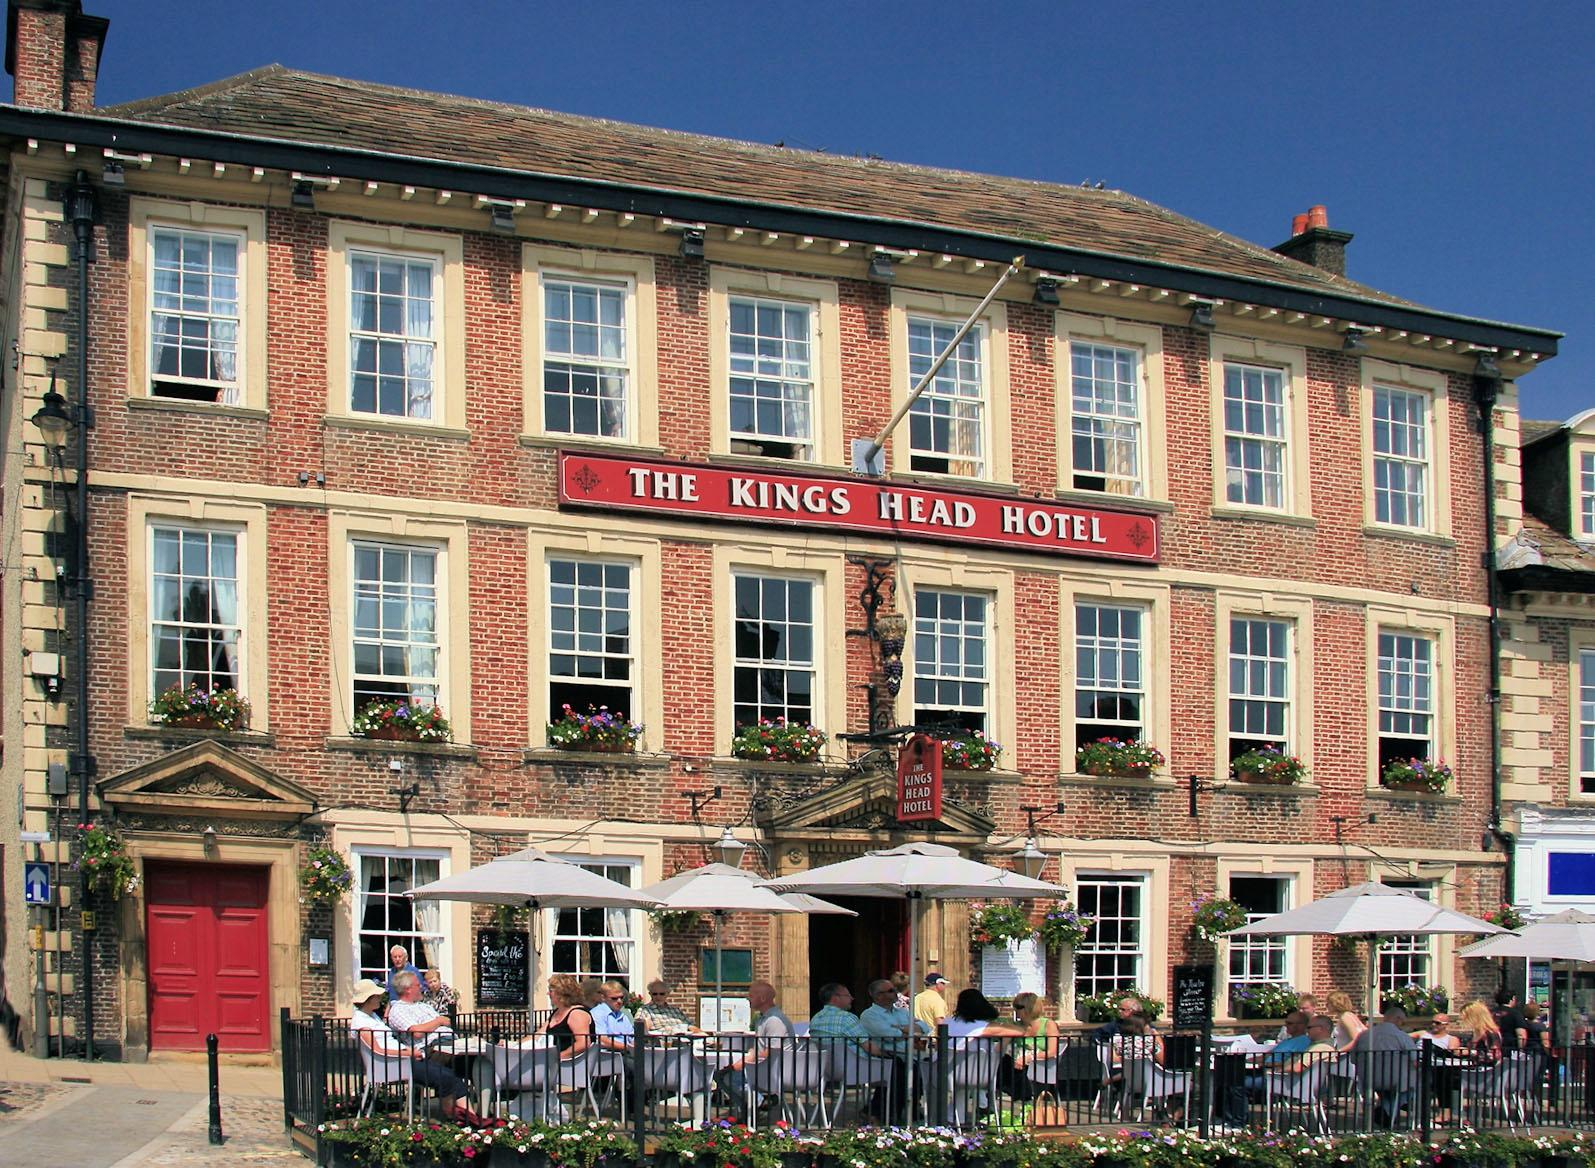 BEST WESTERN The Kings Head Hotel